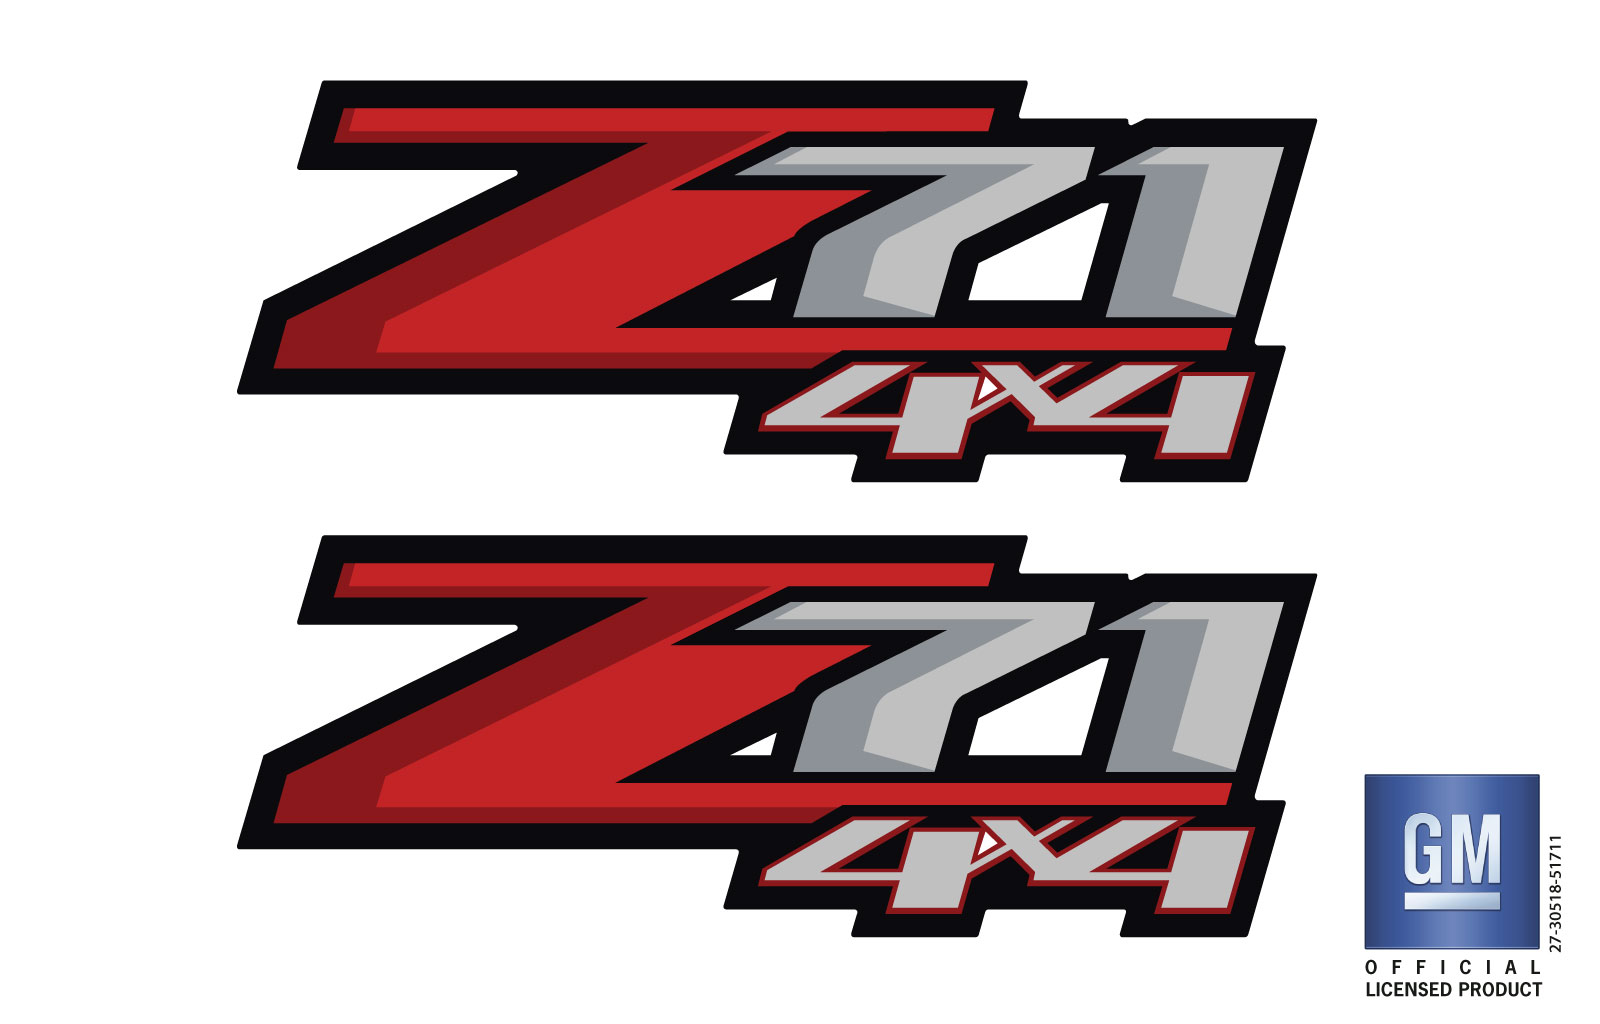 Chevy Silverado Z71 4X4 Bed Side Decal GM LICENSED PRODUCT - Emblems Plus